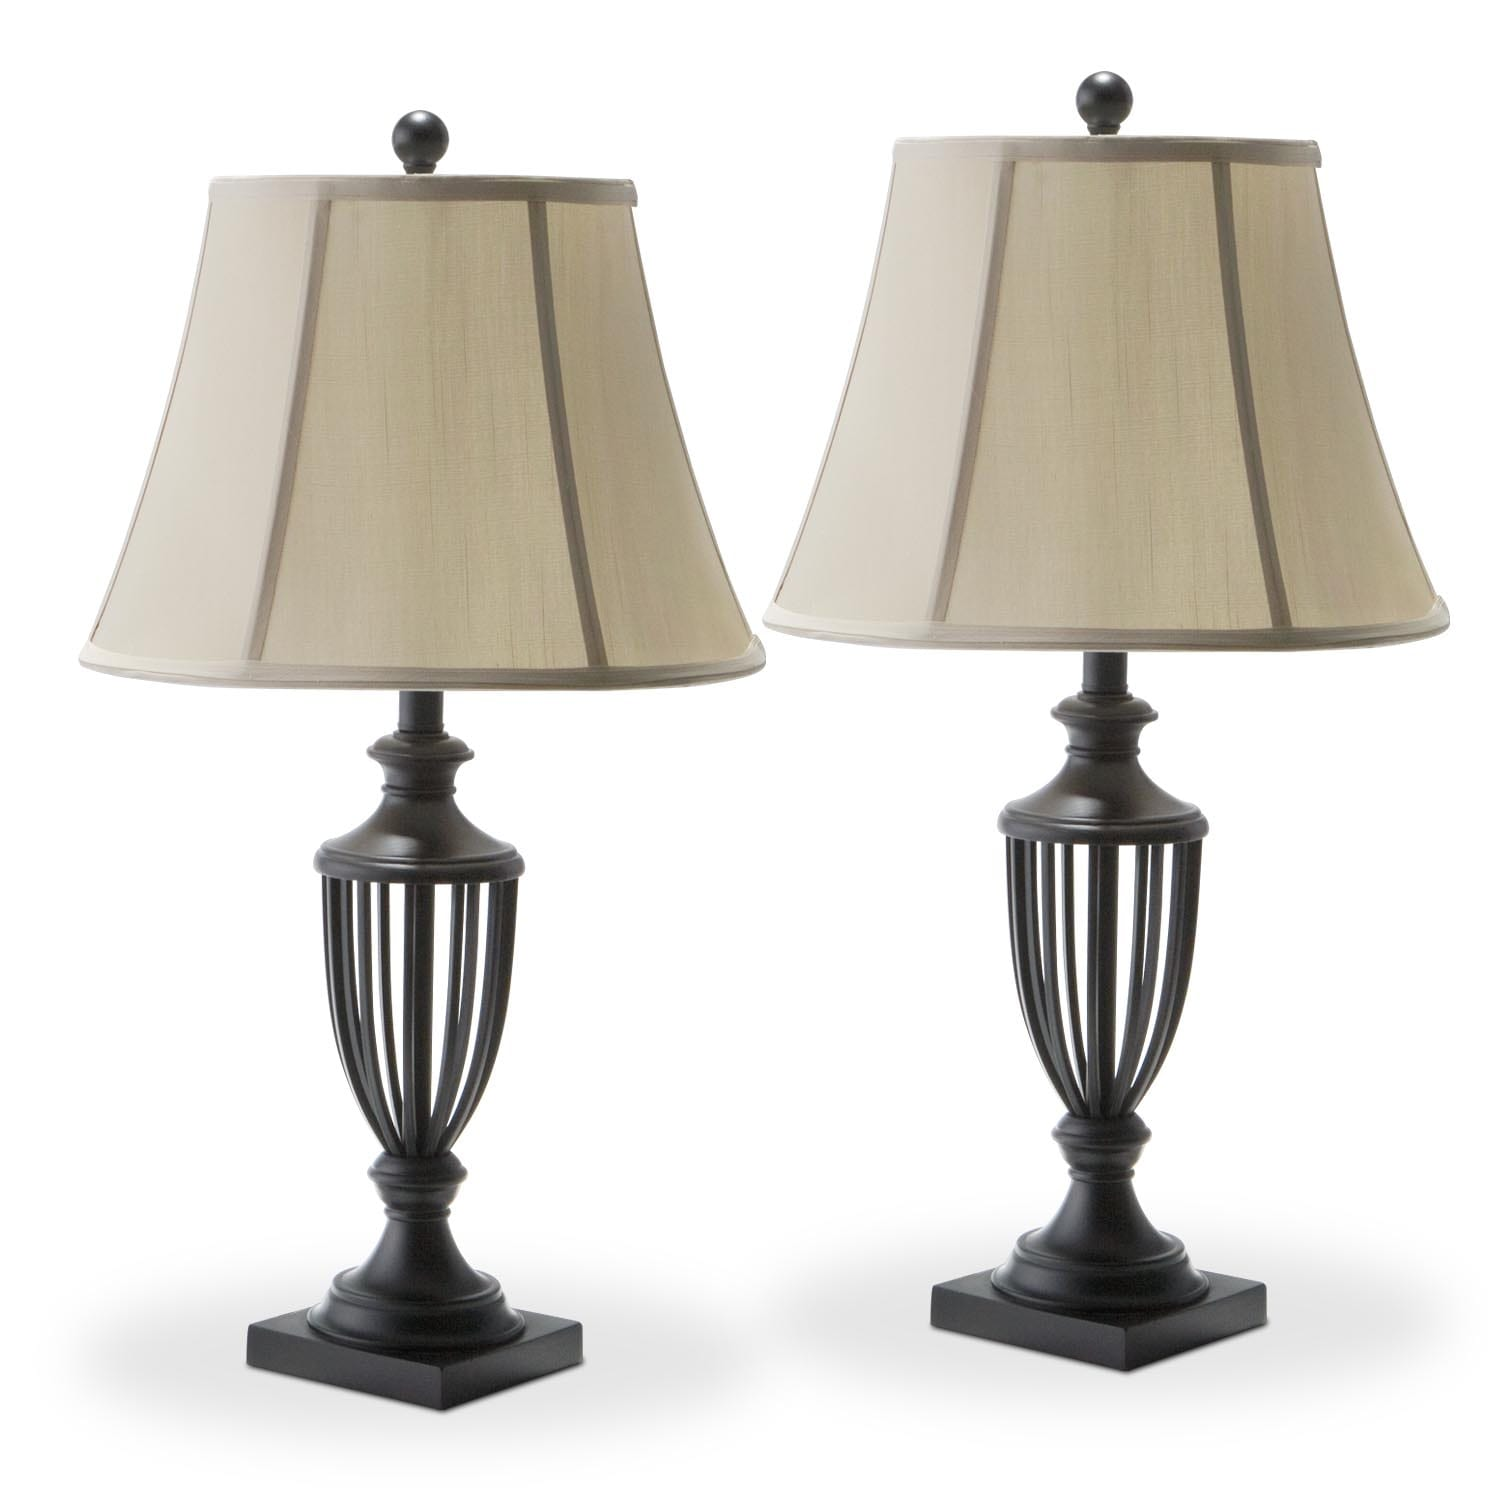 Home Accessories - Mason 2-Pack Table Lamp Set